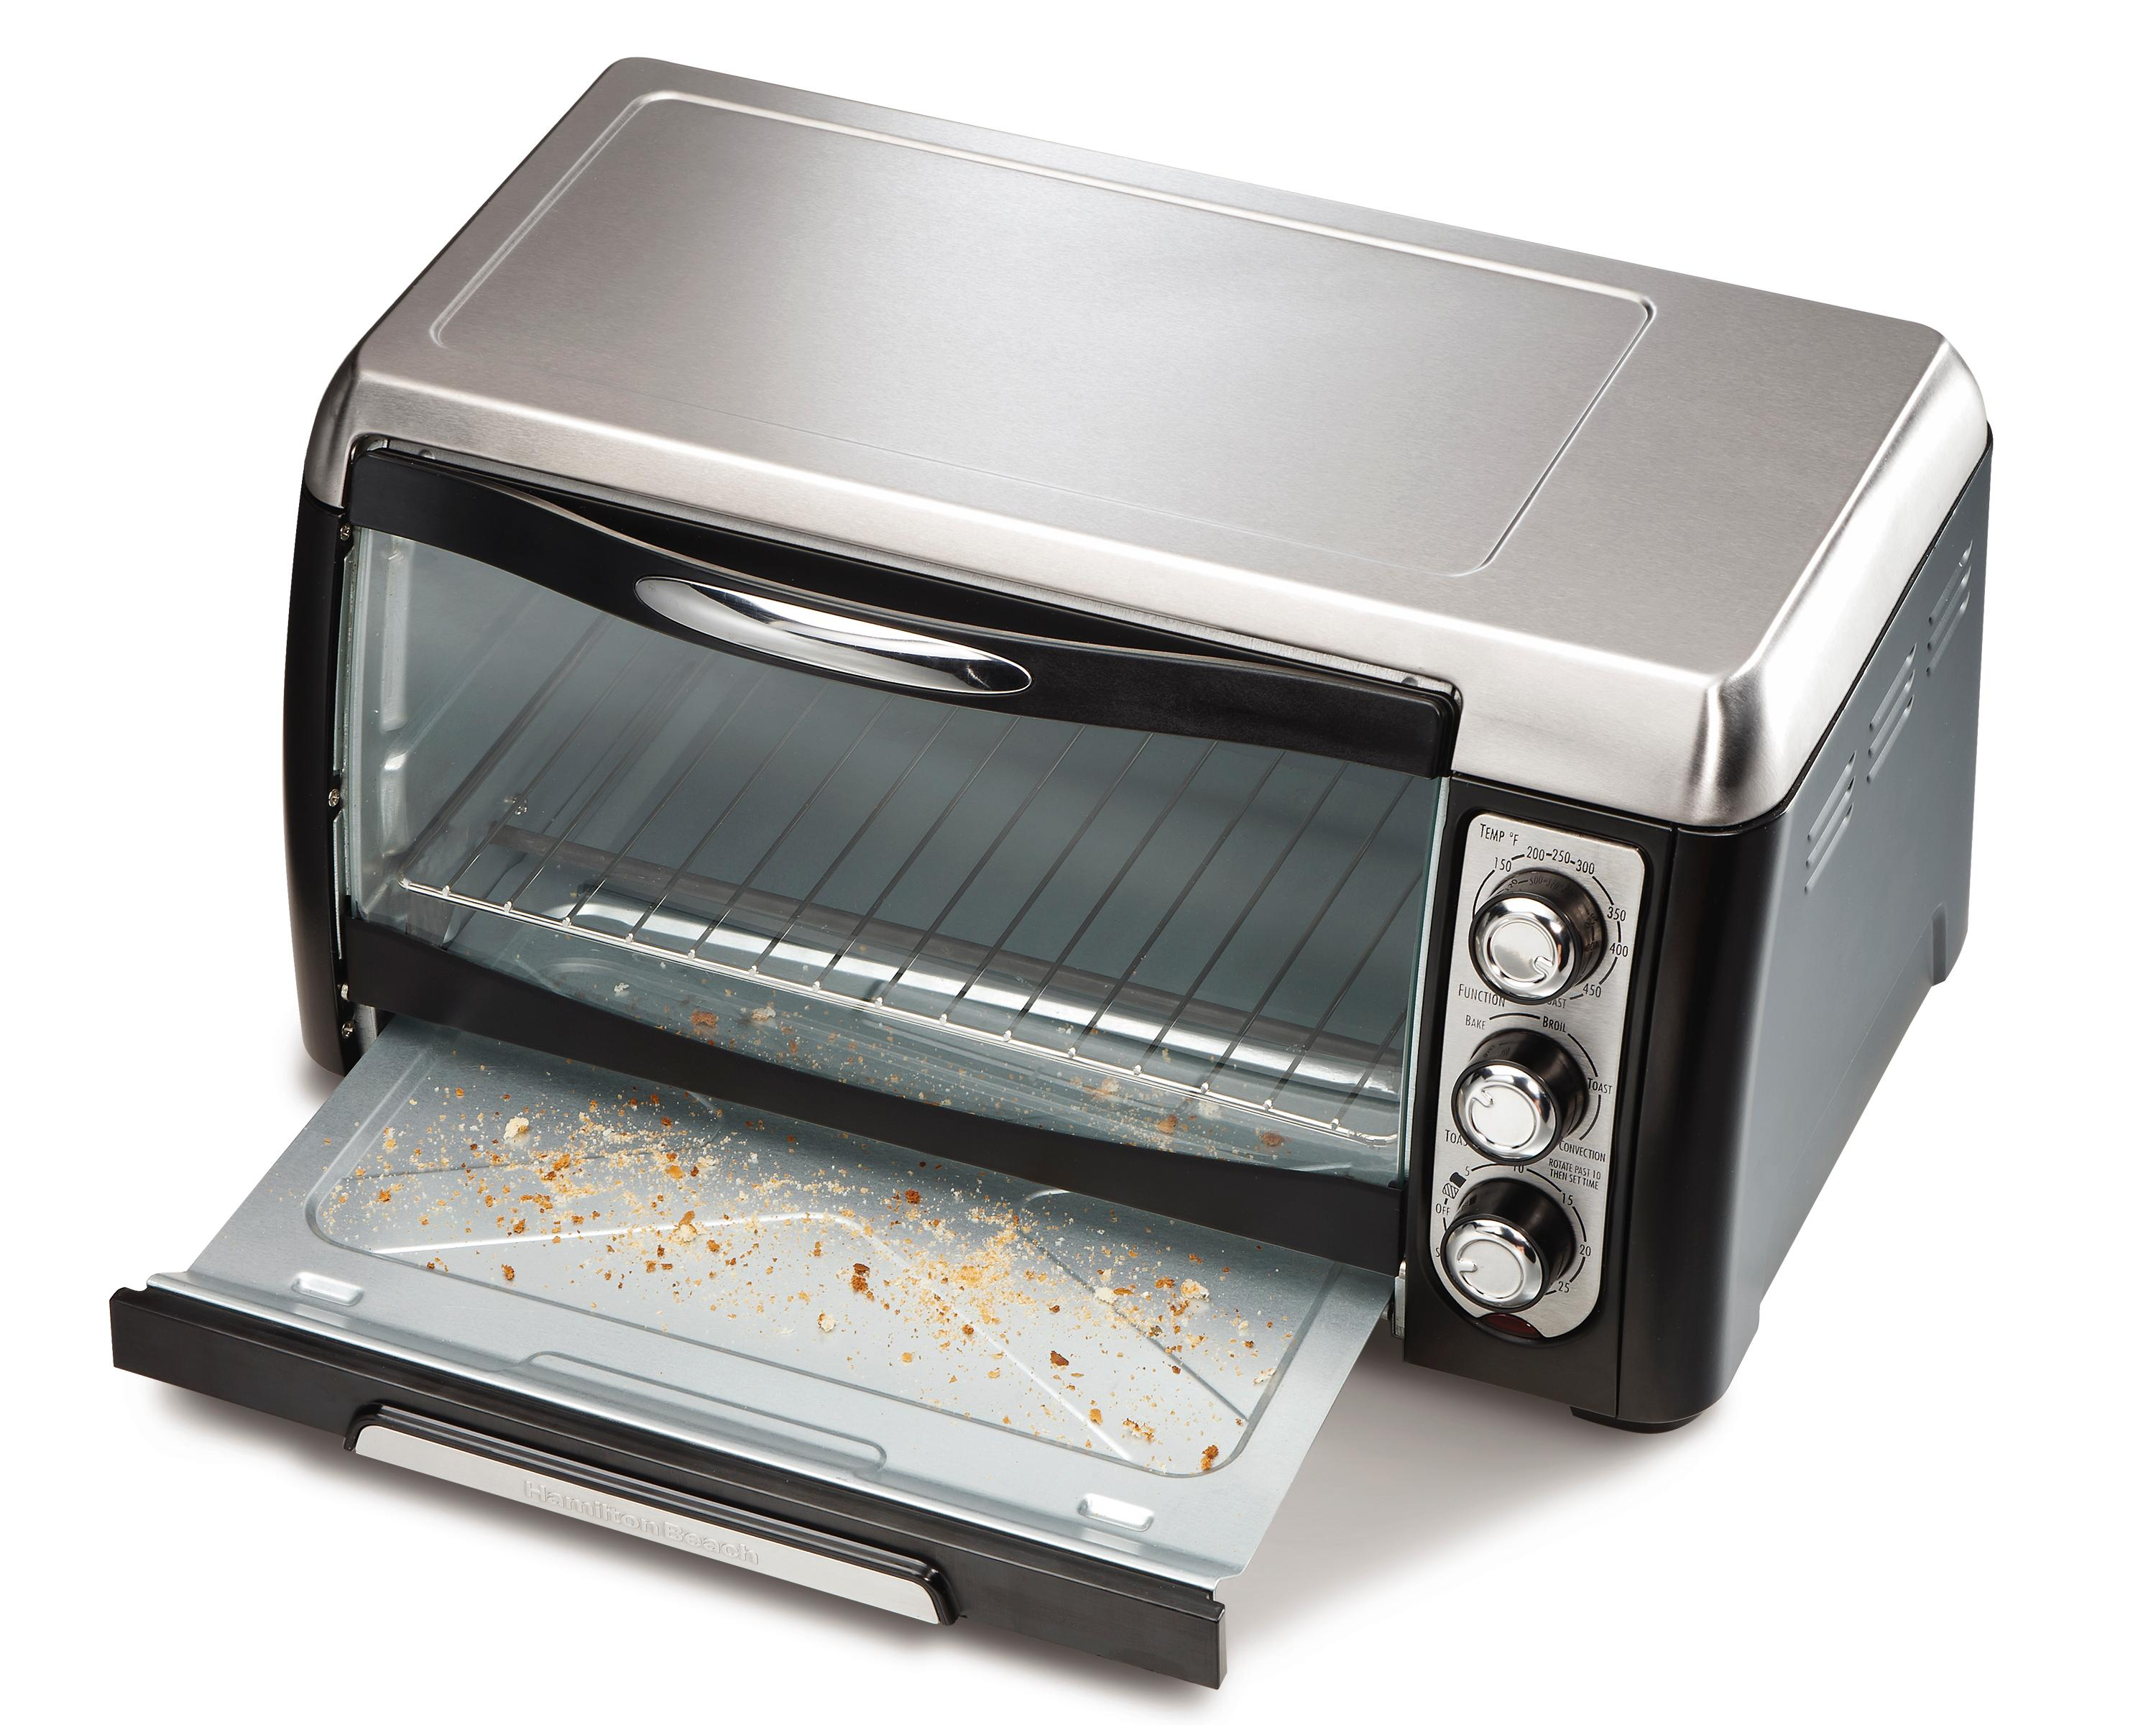 stainless toaster target reviews slot cuisinart calphalon oven s slice costco amazon steel